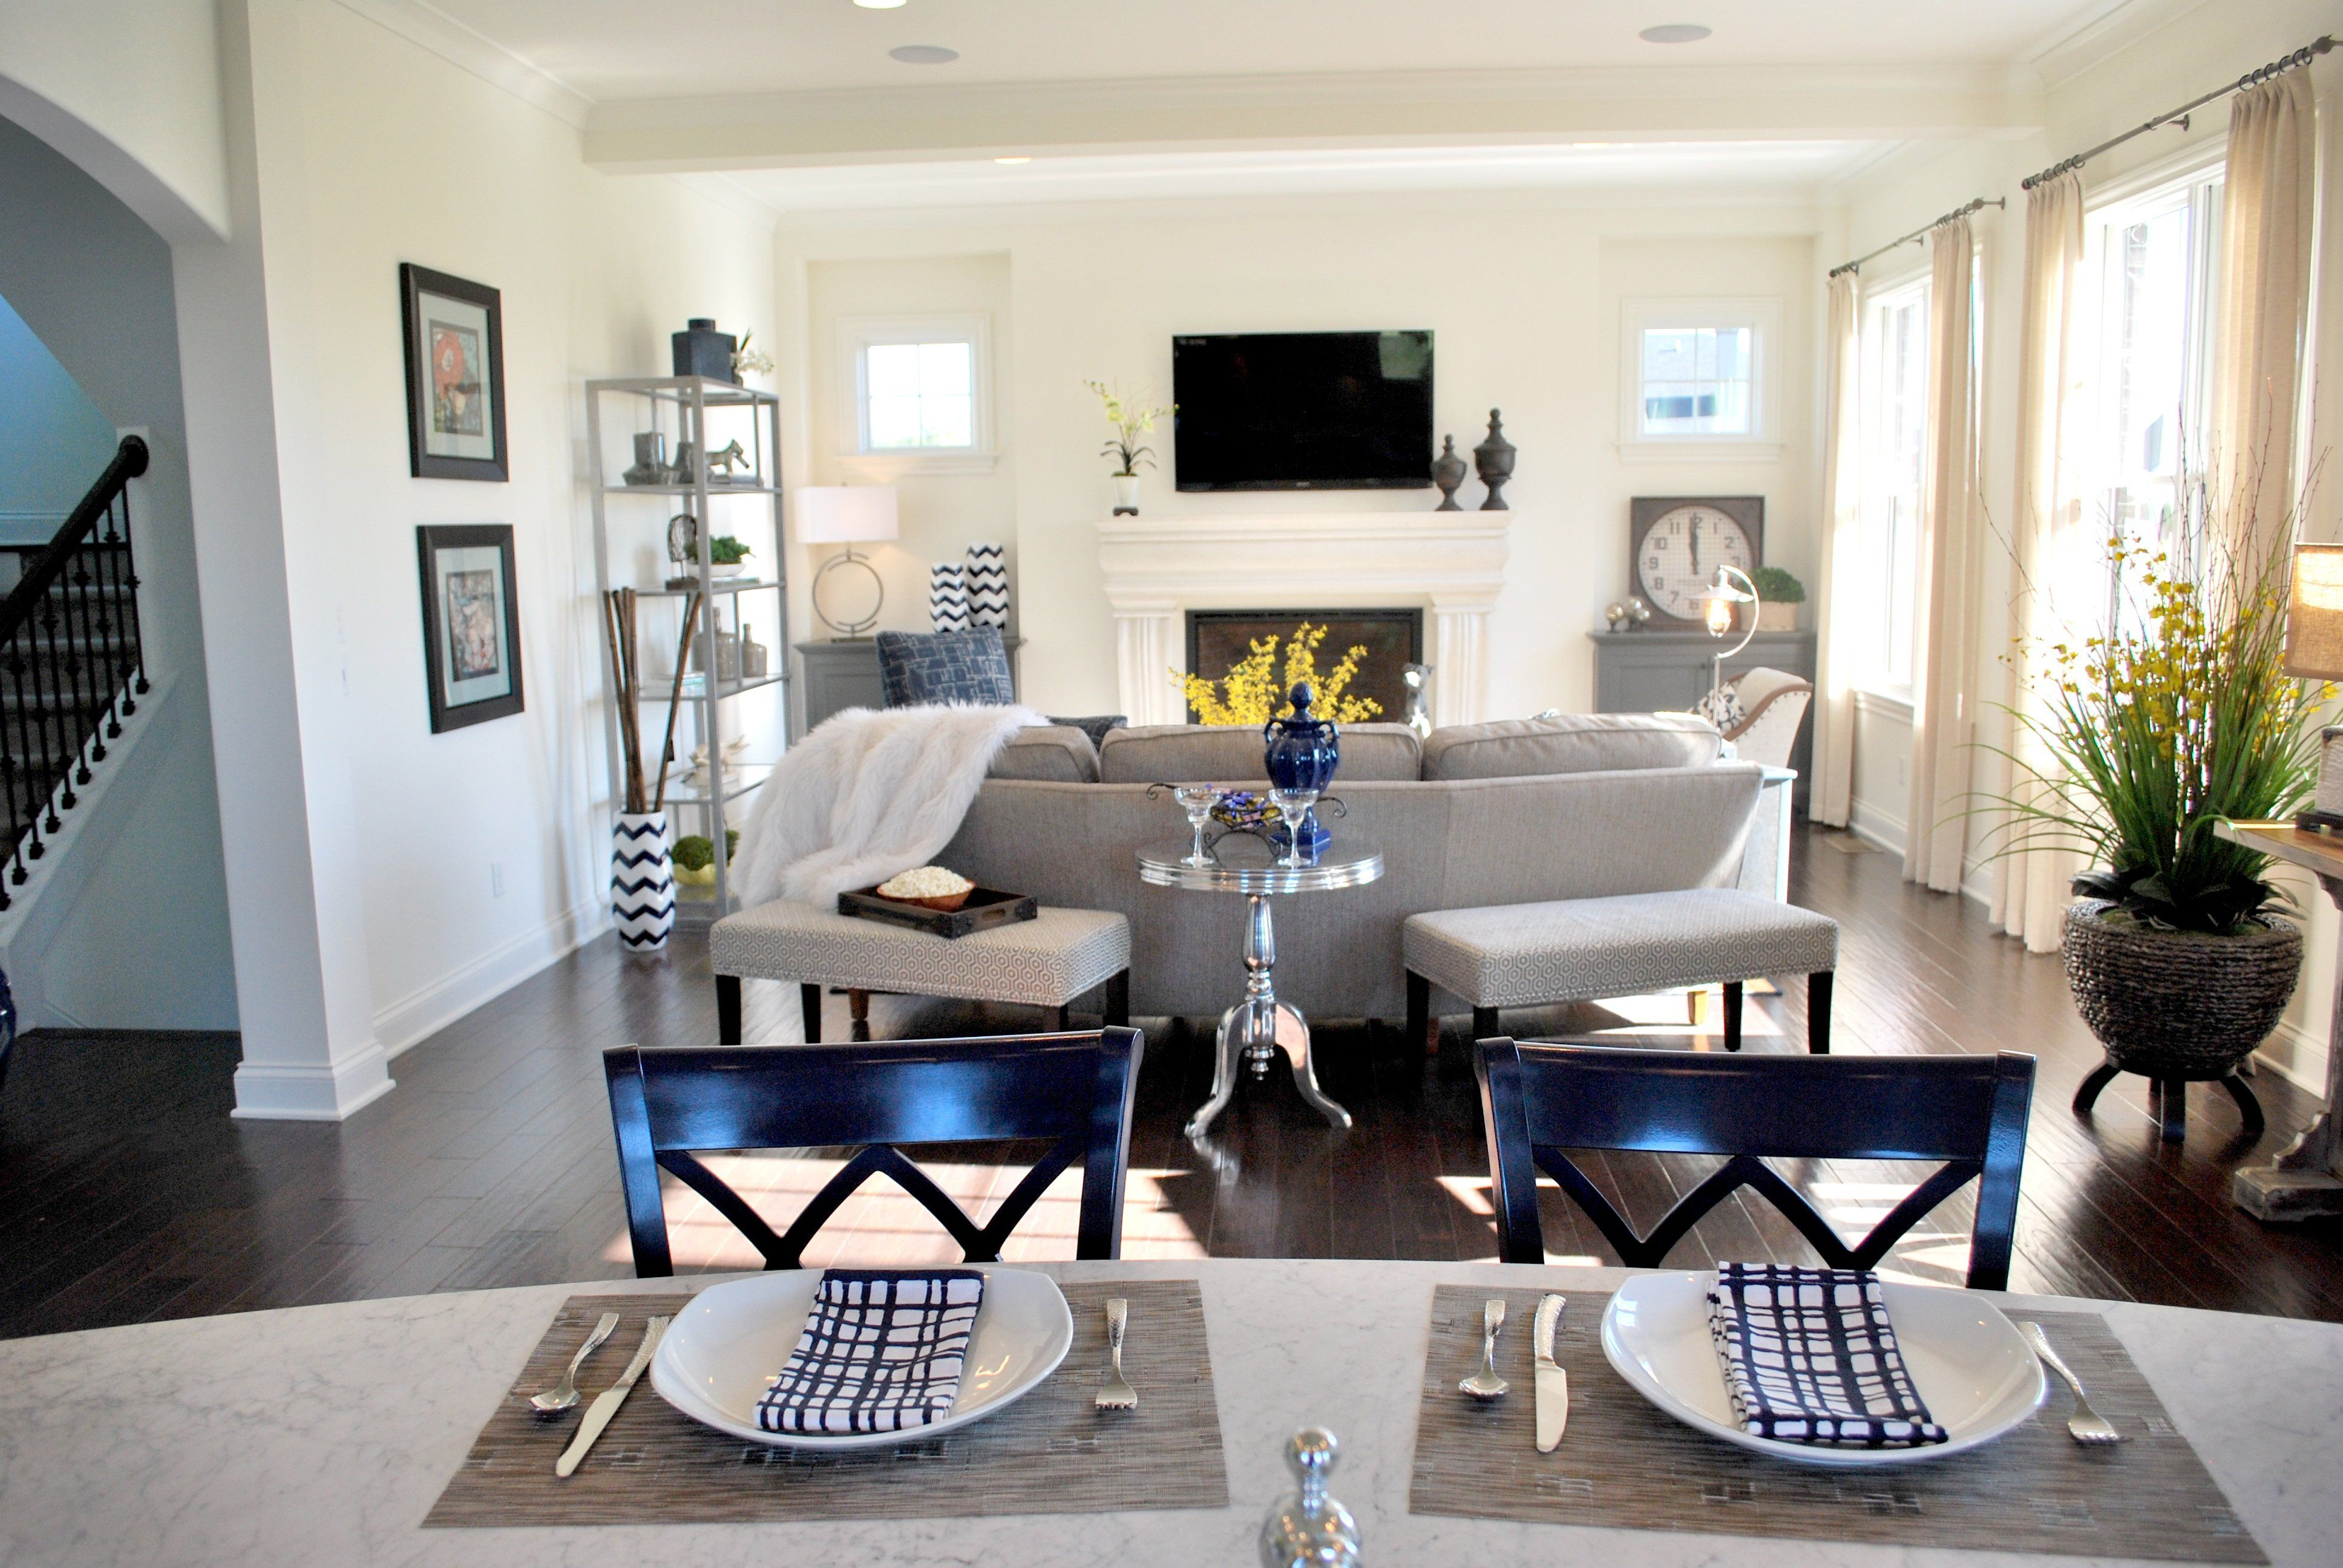 Beau The Luxe Home Decor